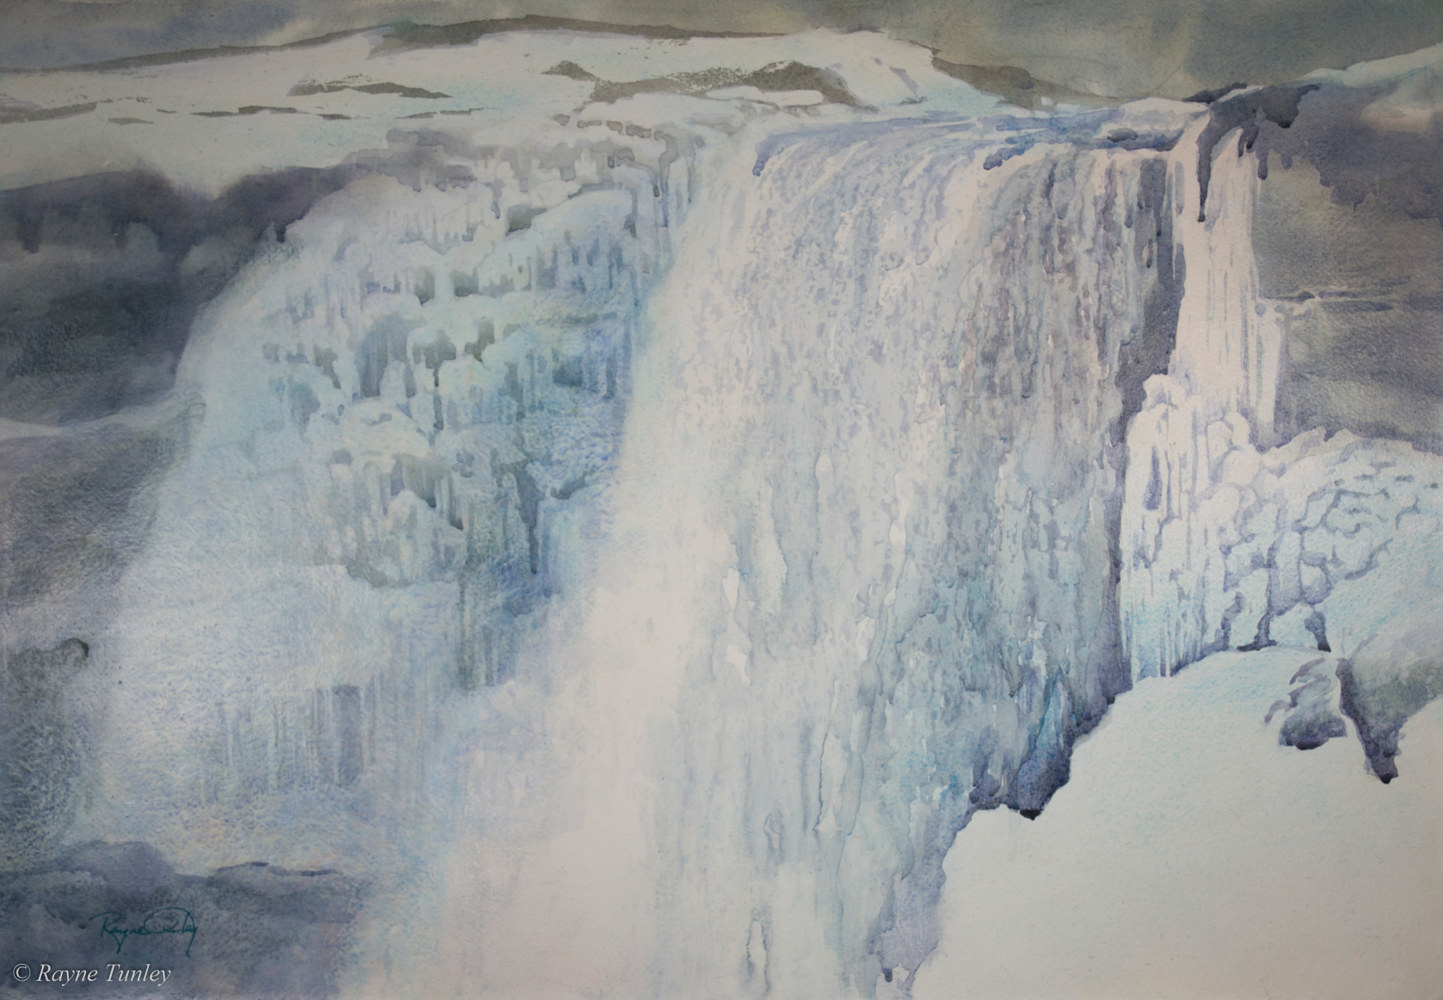 Rayne Tunley, Winter Serenade, Niagara Falls, 18in x 26in, watercolour by Rayne Tunley